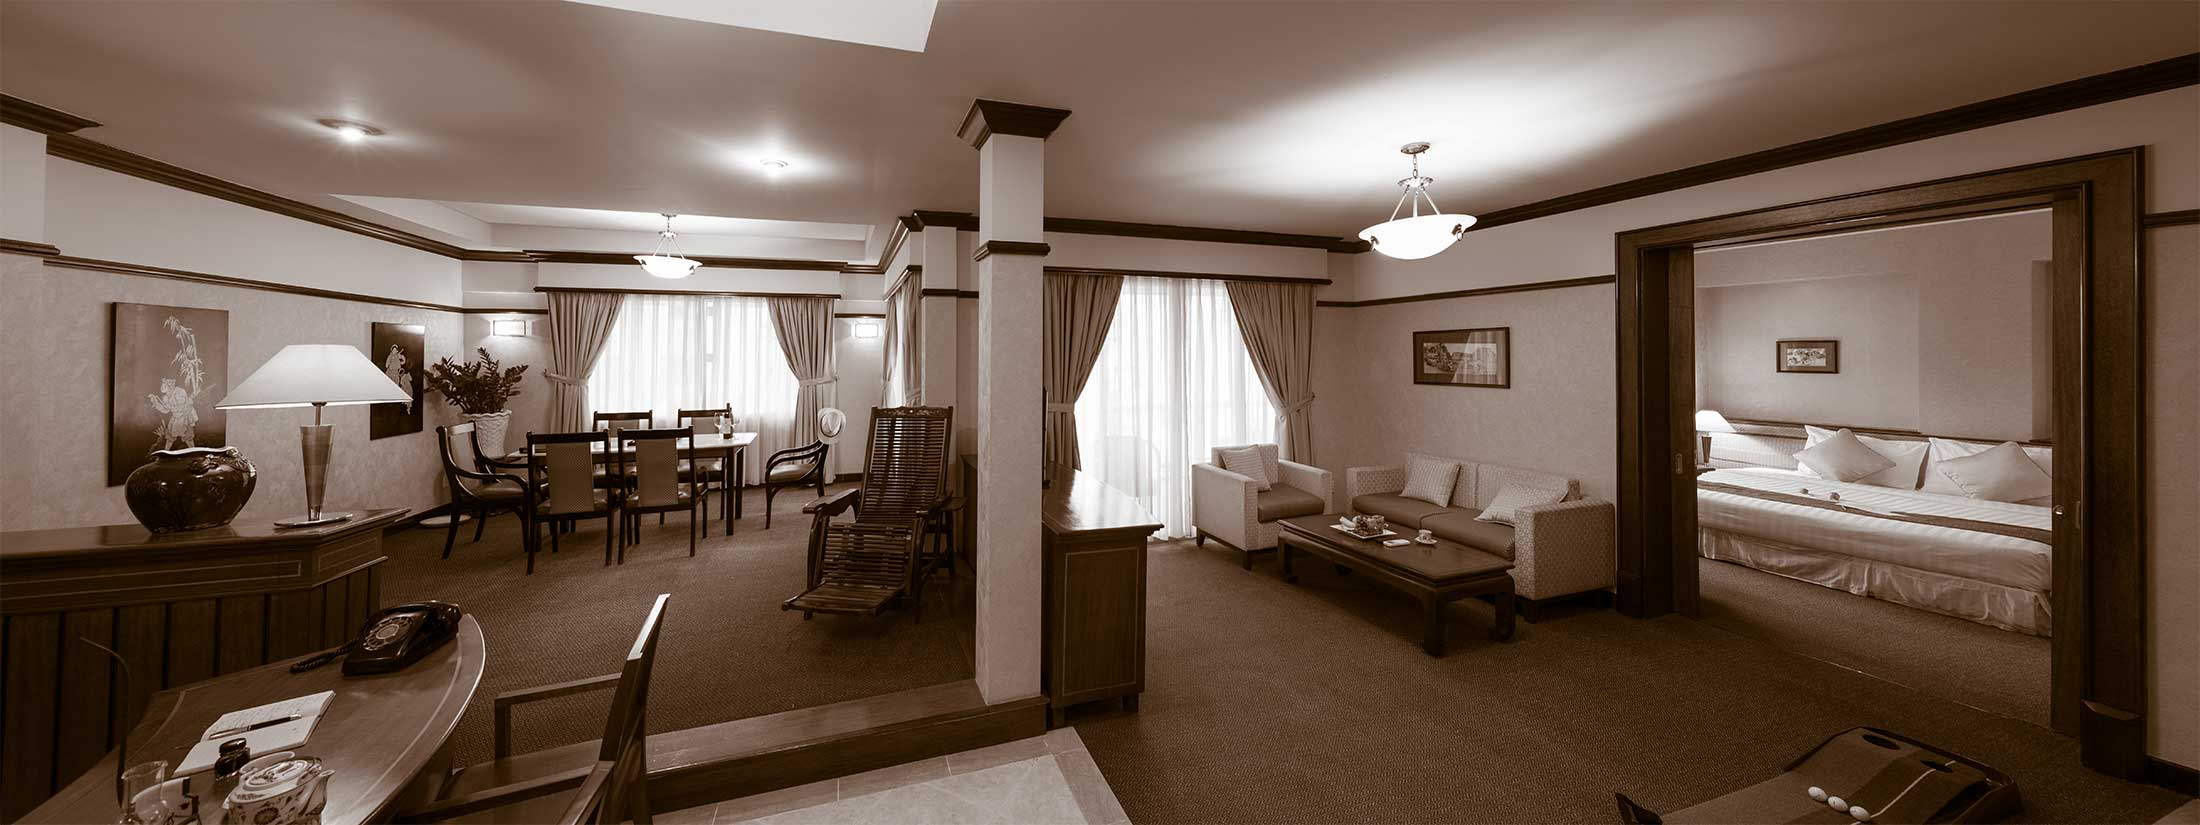 BongSen1_Sepia_BED-Facilities-(31-of-36)